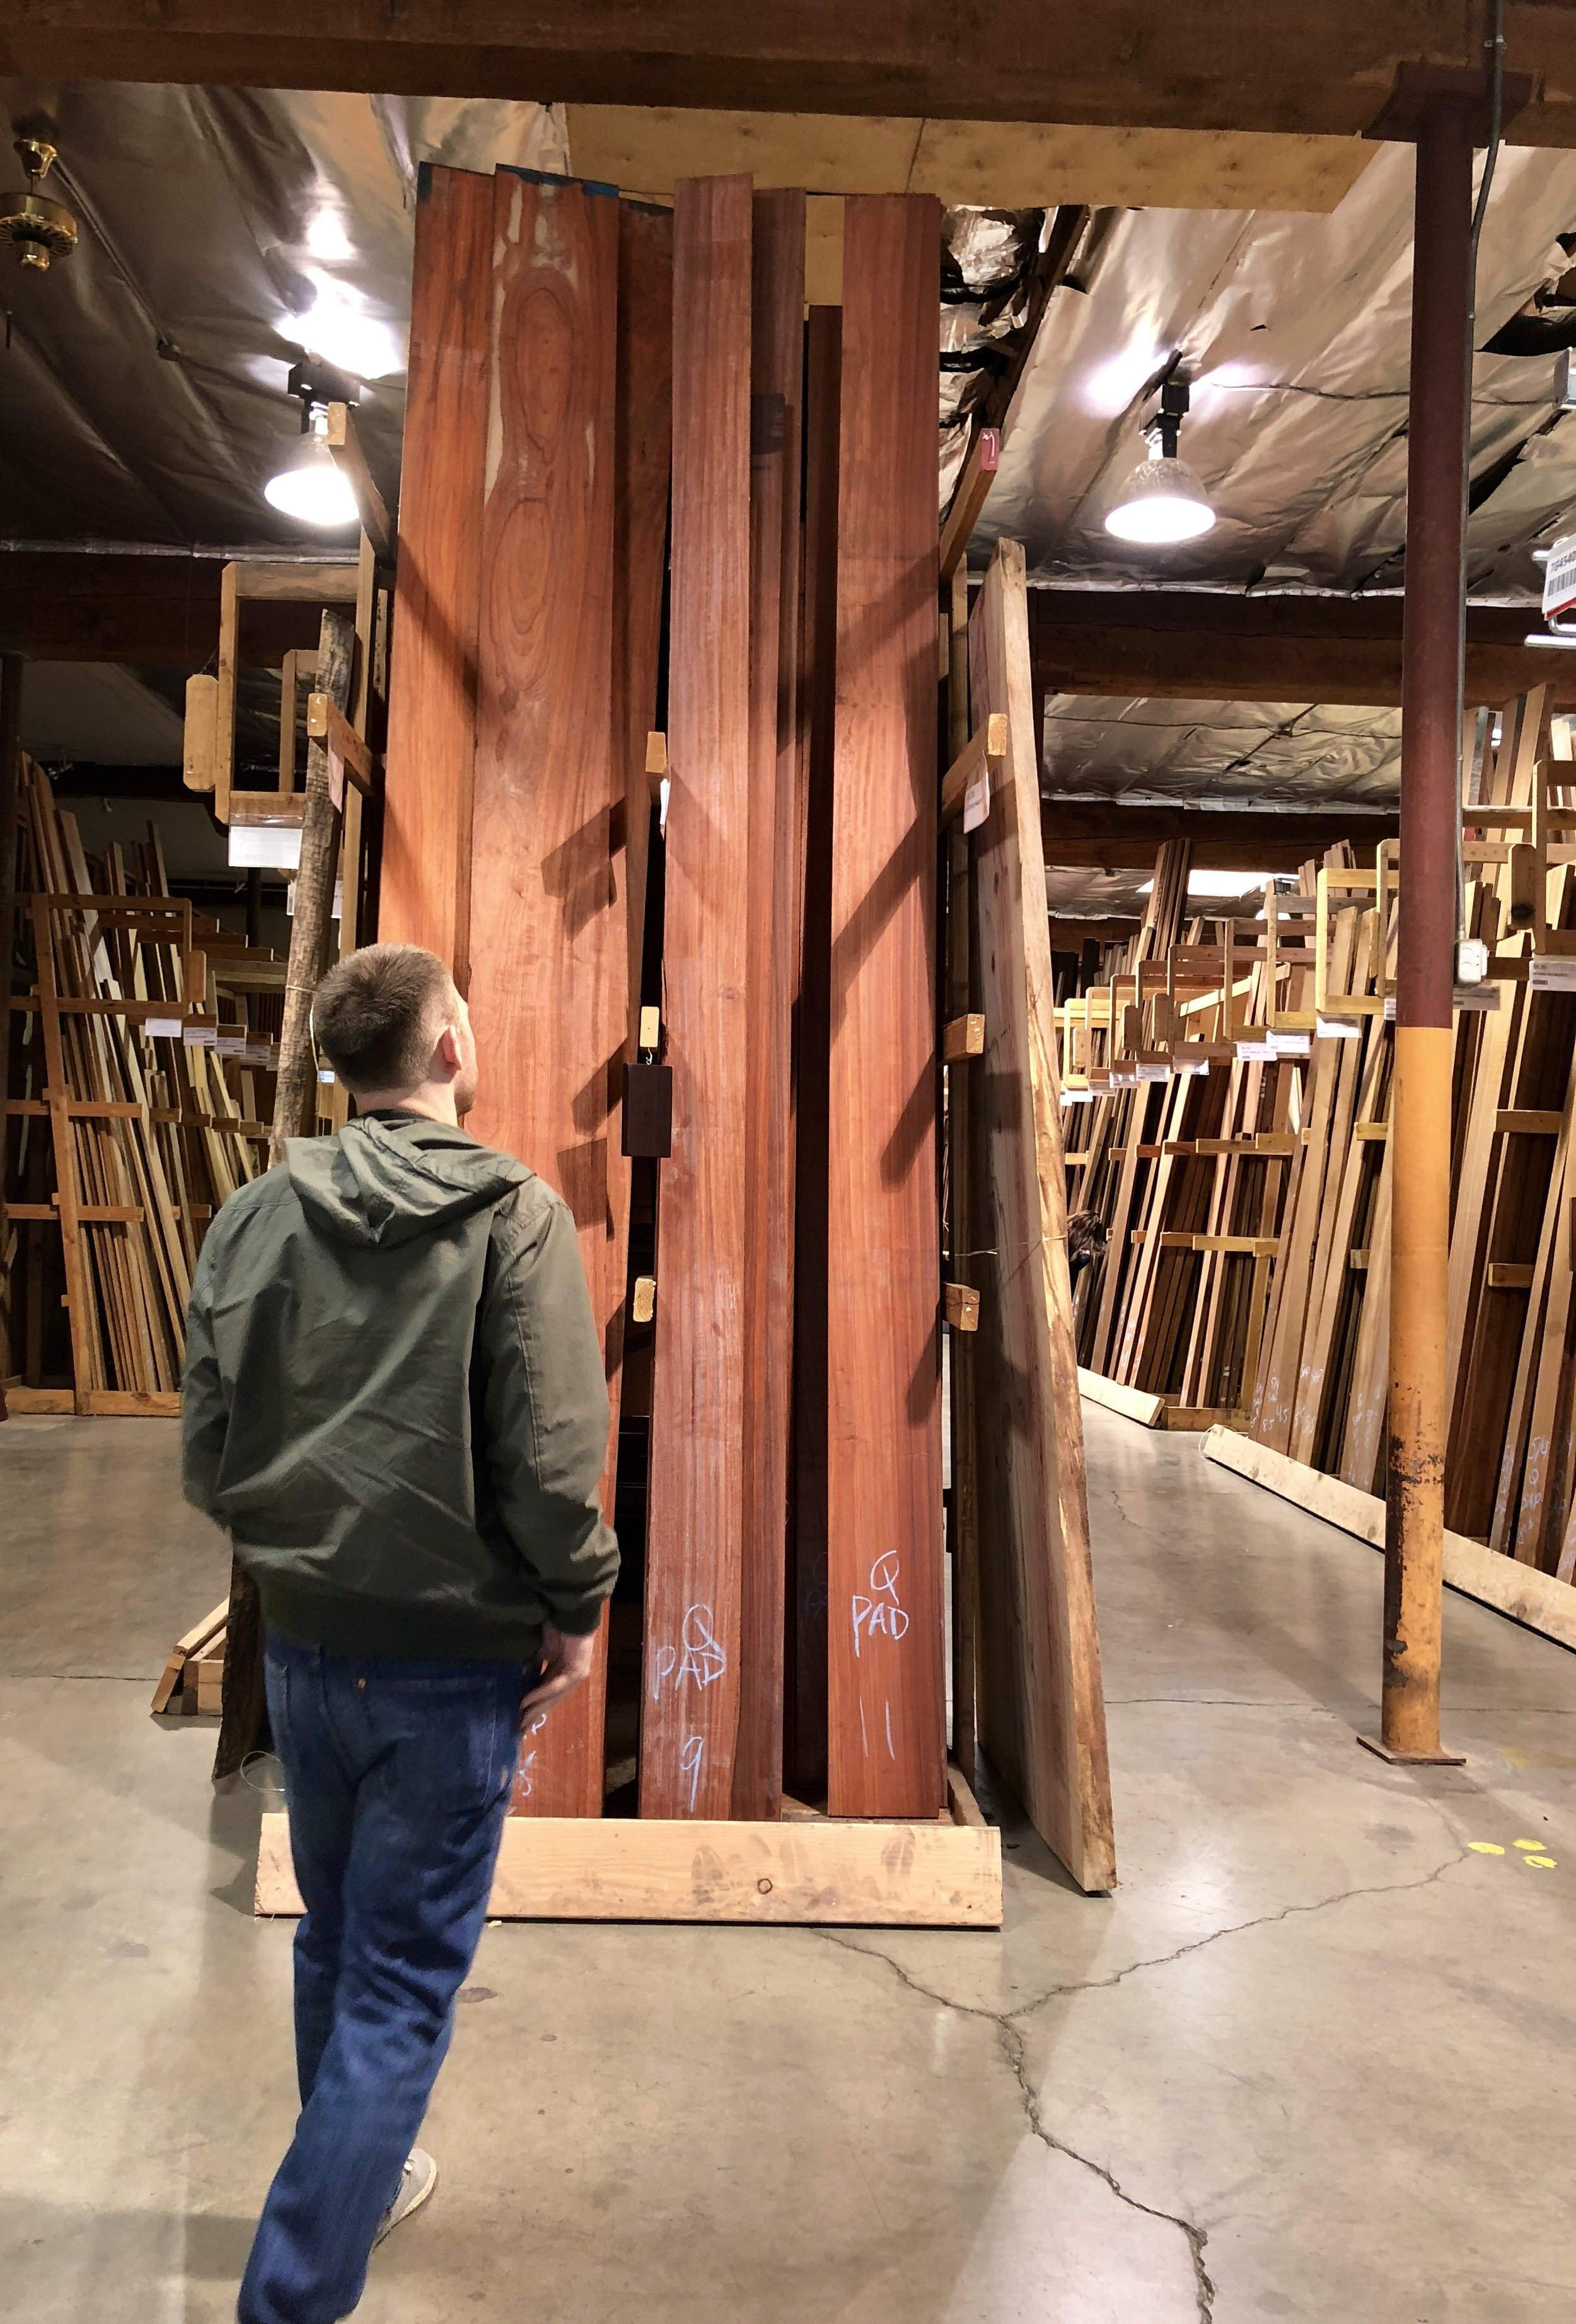 this was Jordan's little piece of heaven. we got to check out a sweet local lumber shop. he was like a kid in a candy shop. such beautiful pieces of wood were there. Jordan was loving every minute of it.